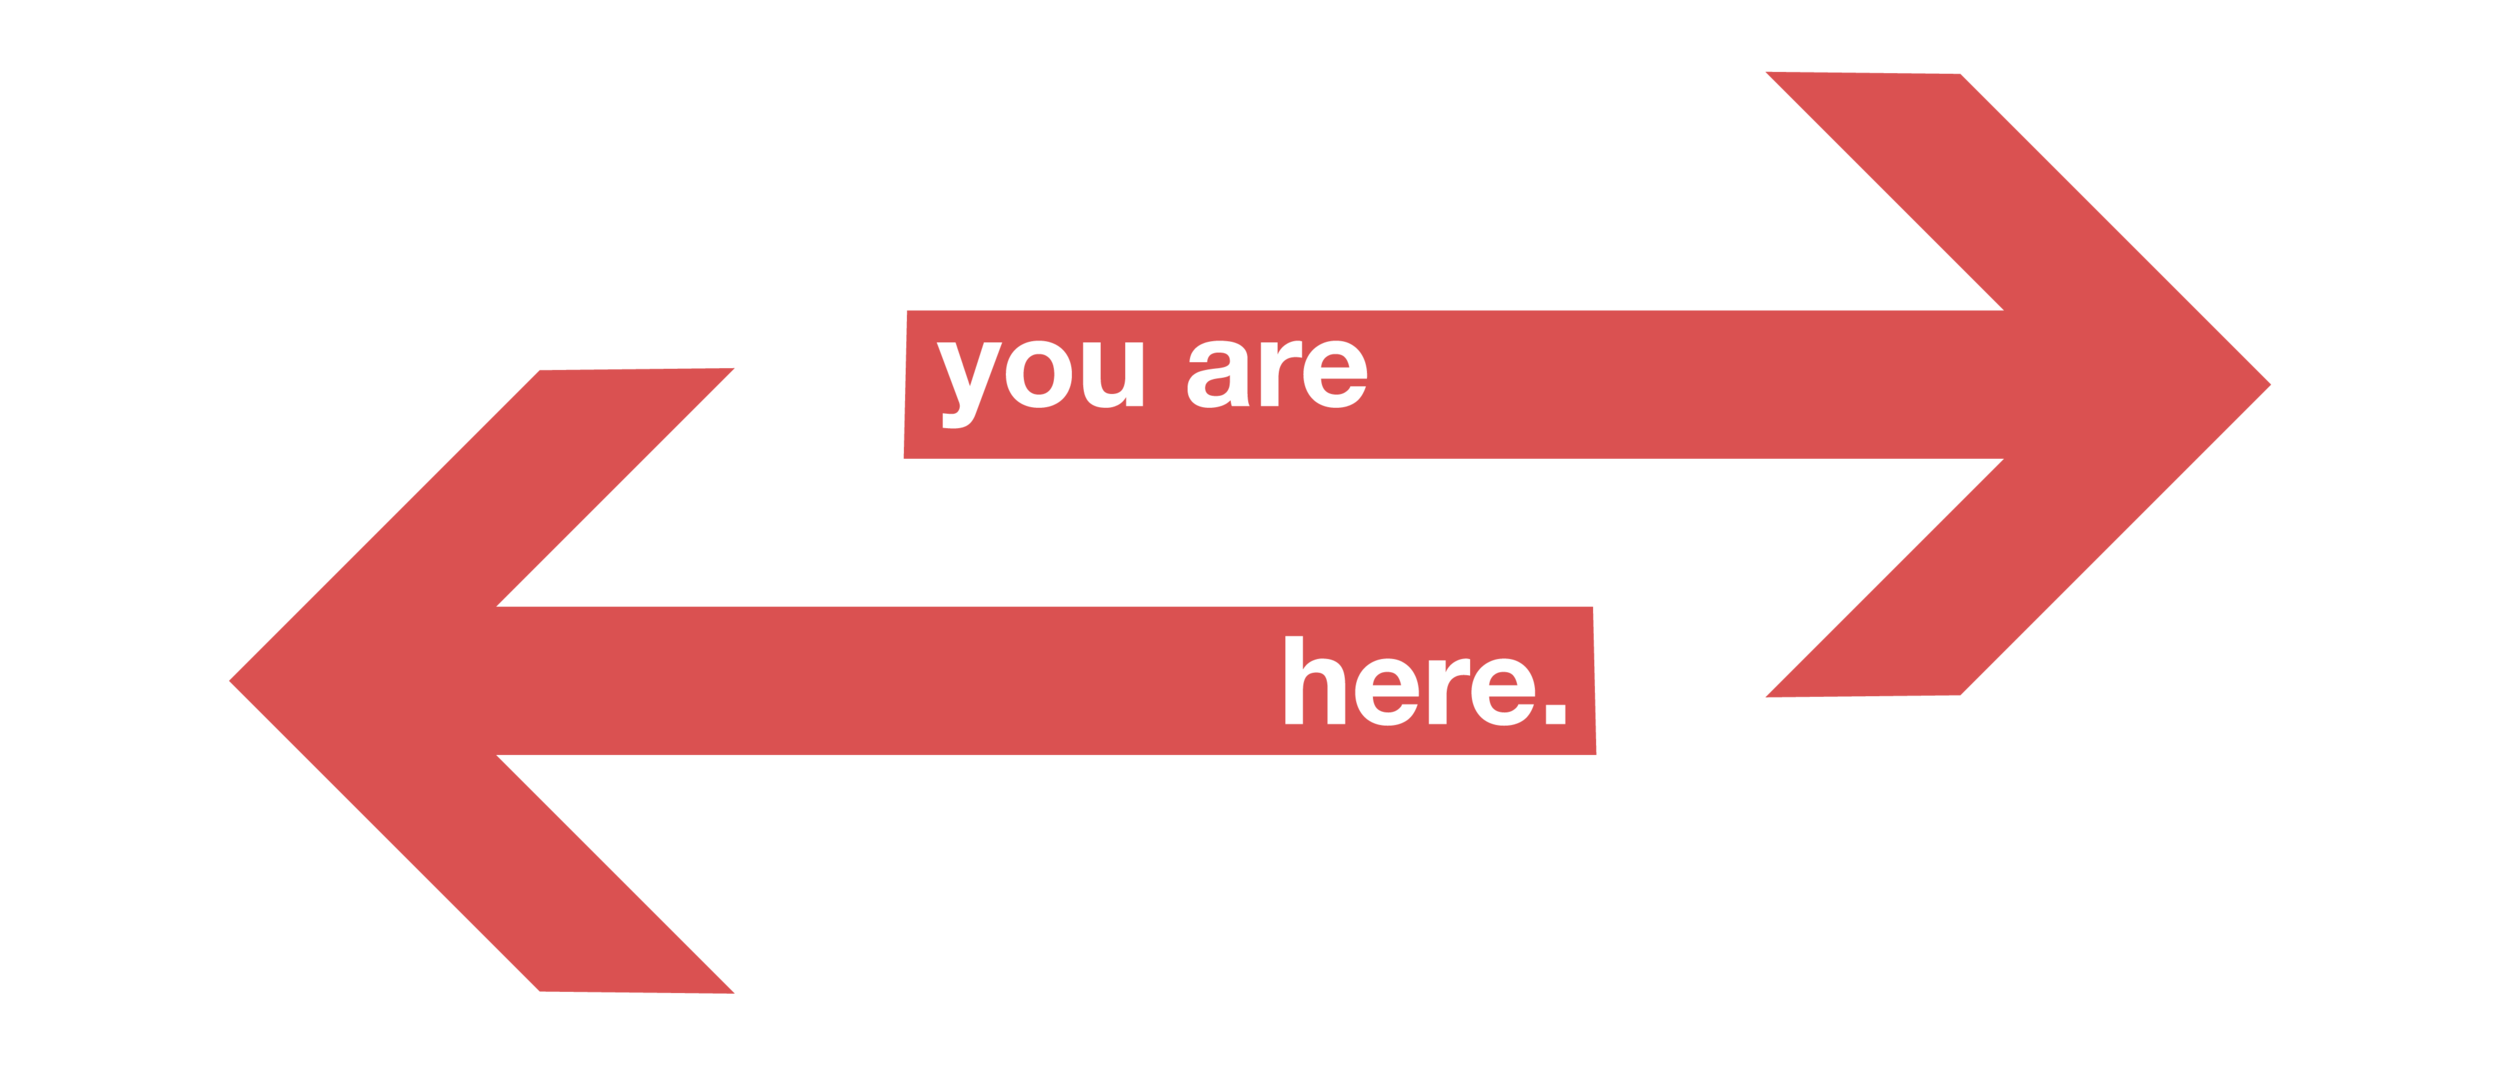 You Are Here Title 1-19.png